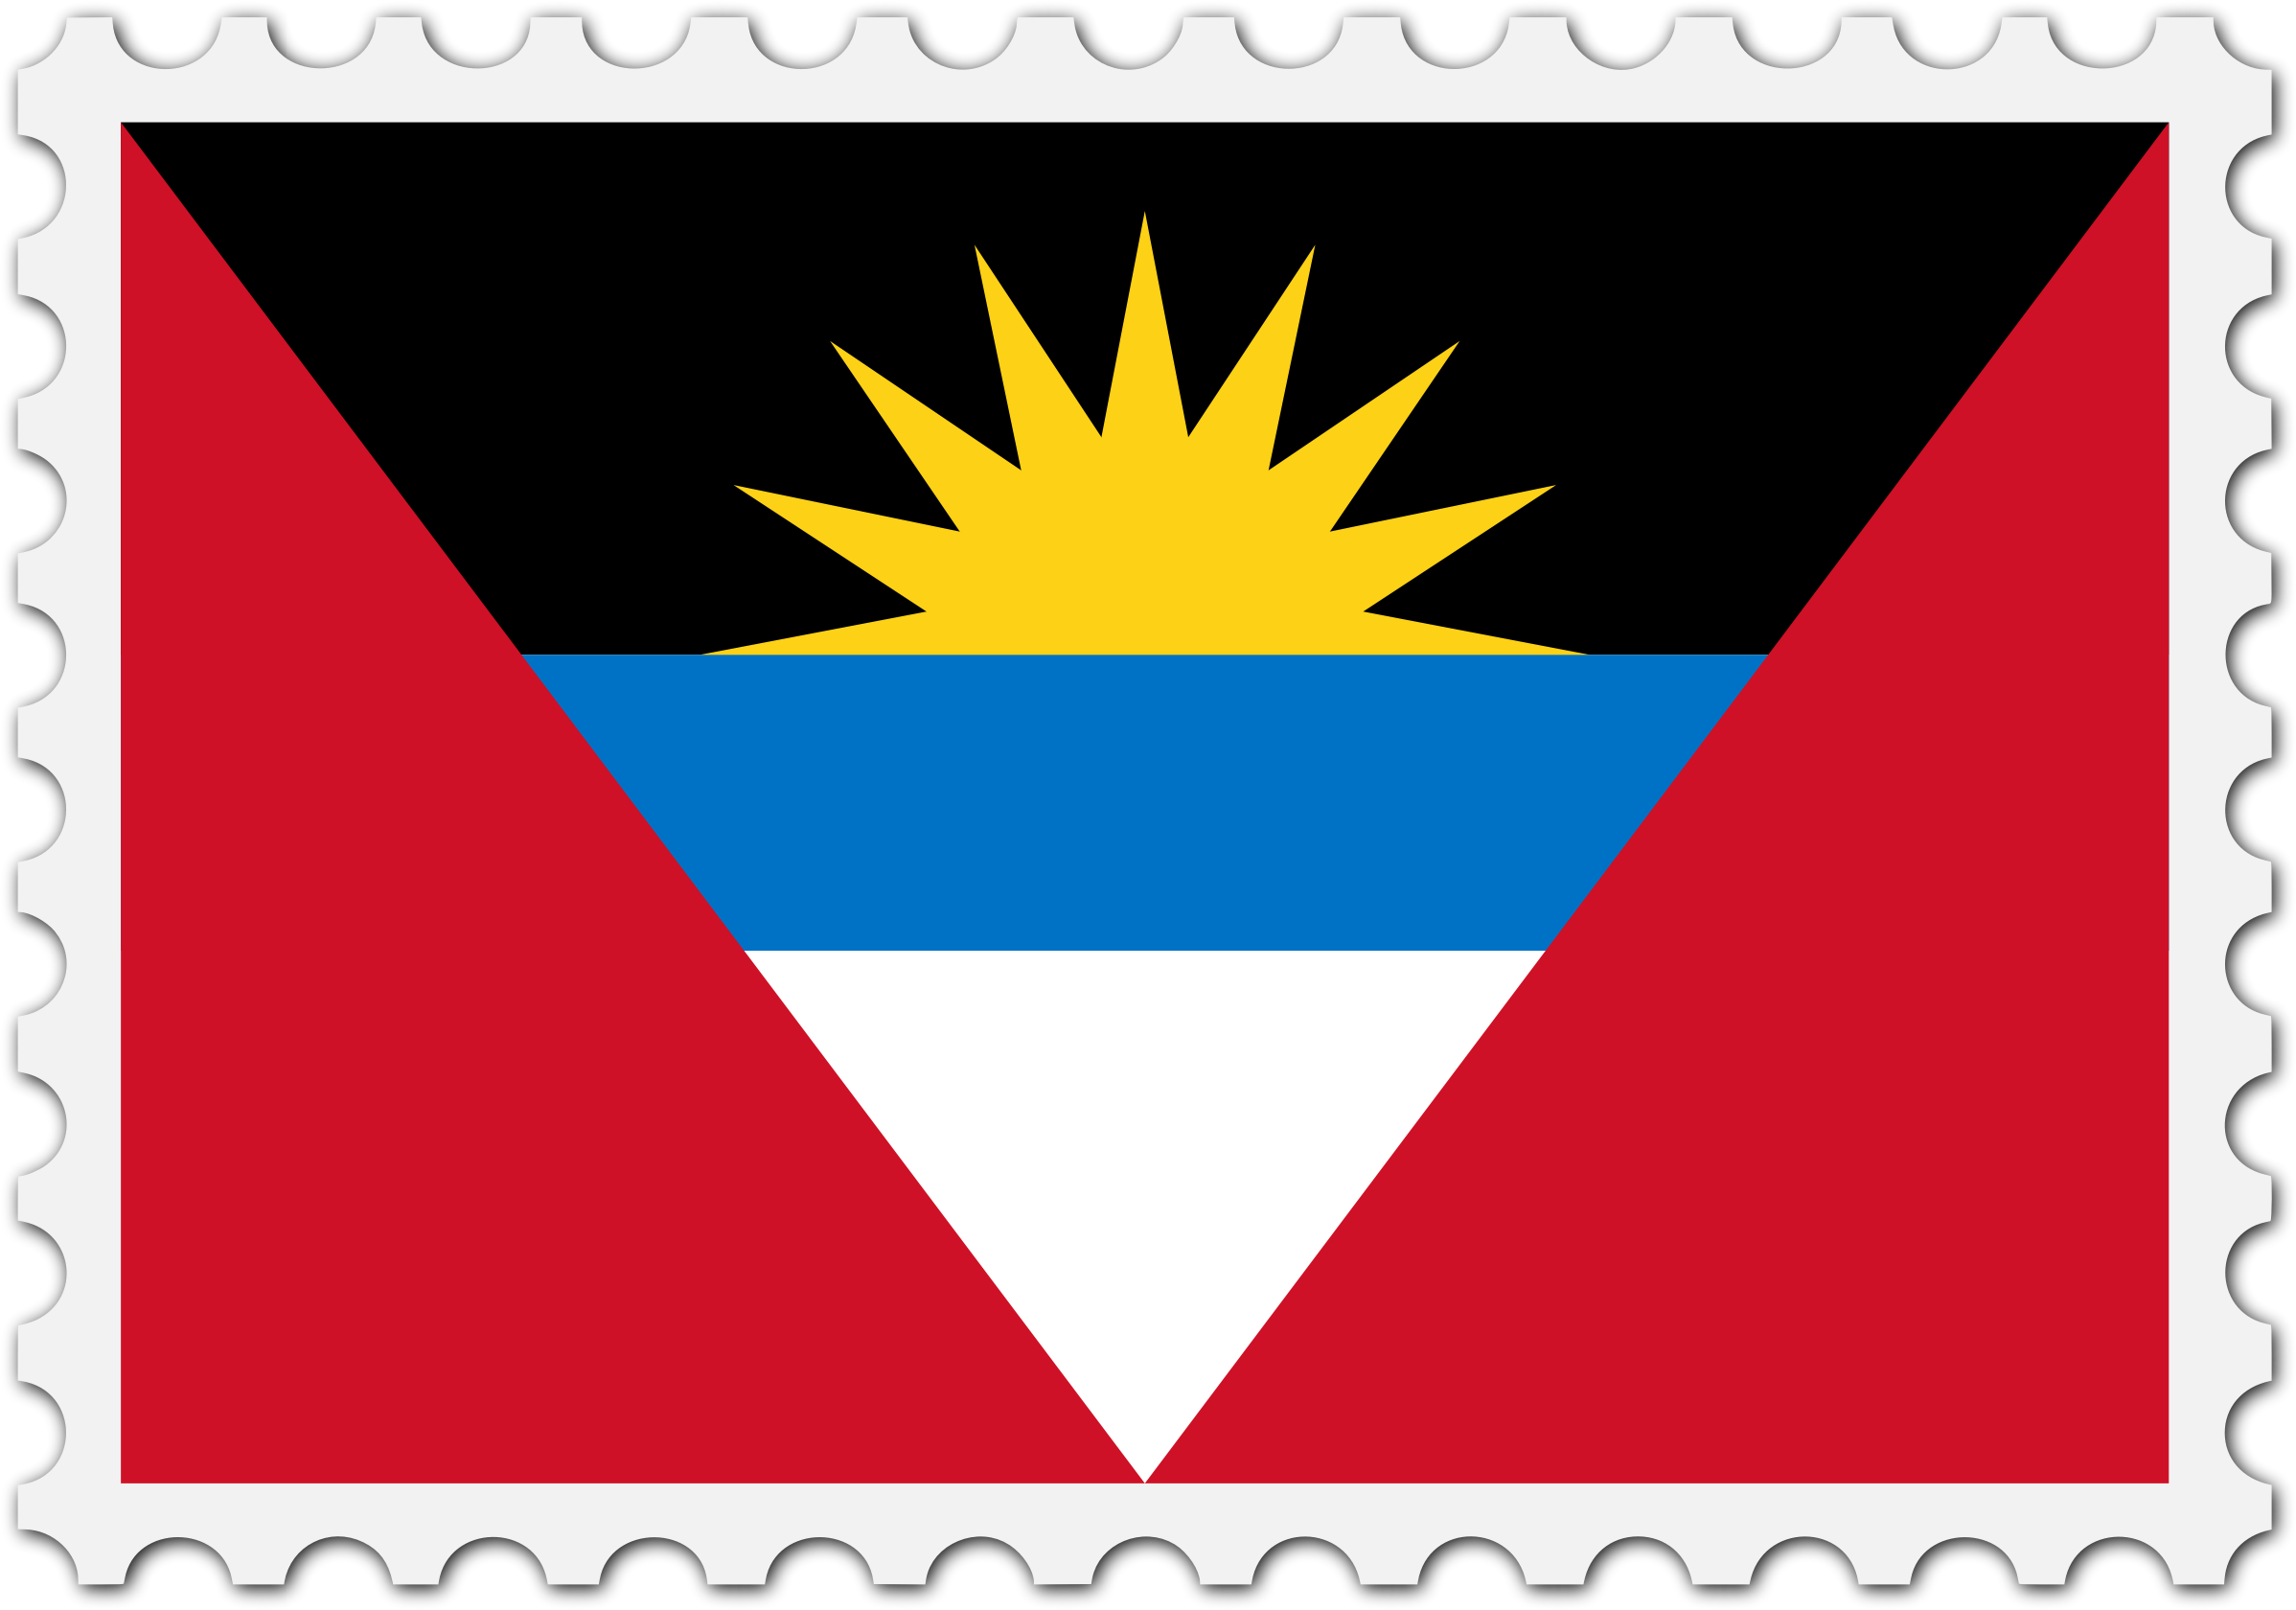 Antigua and Barbuda flag stamp by Firkin